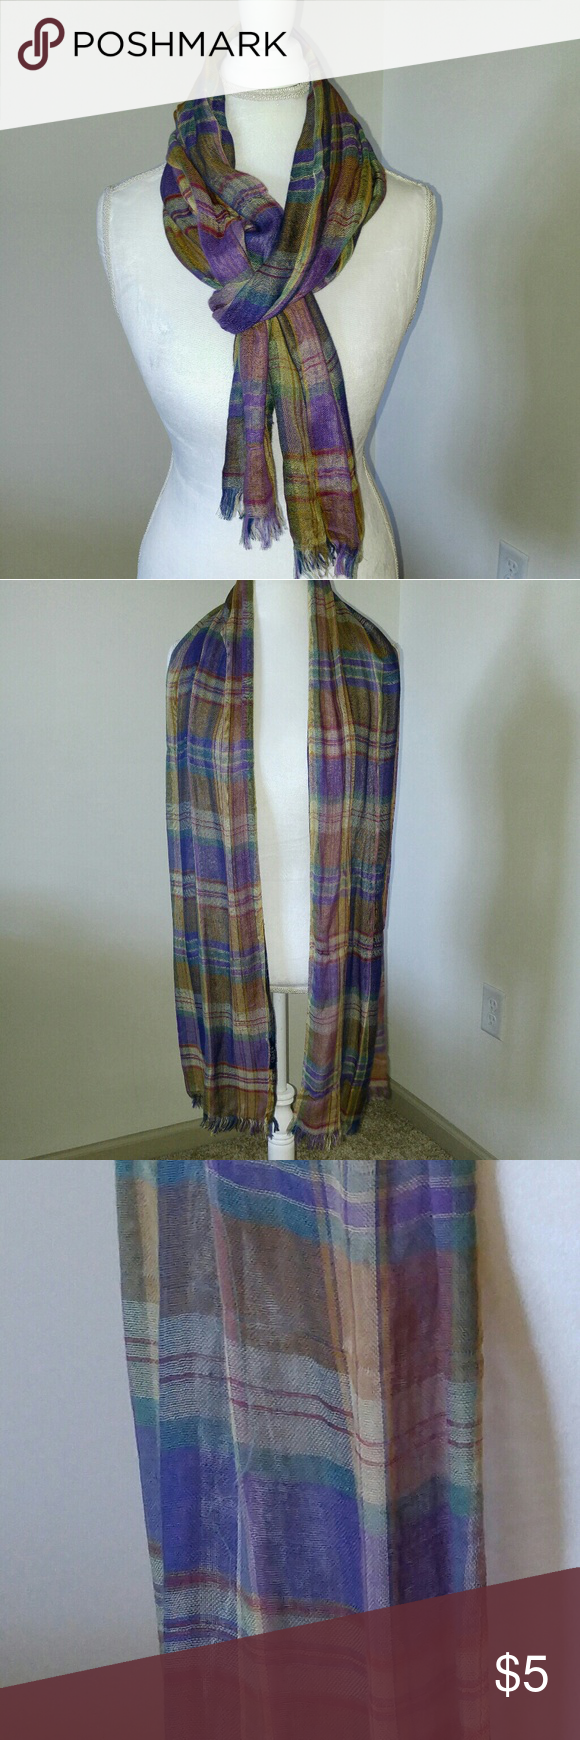 Plaid scarf Plaid scarf. Looks beautiful with a purple shirt. Accessories Scarves & Wraps